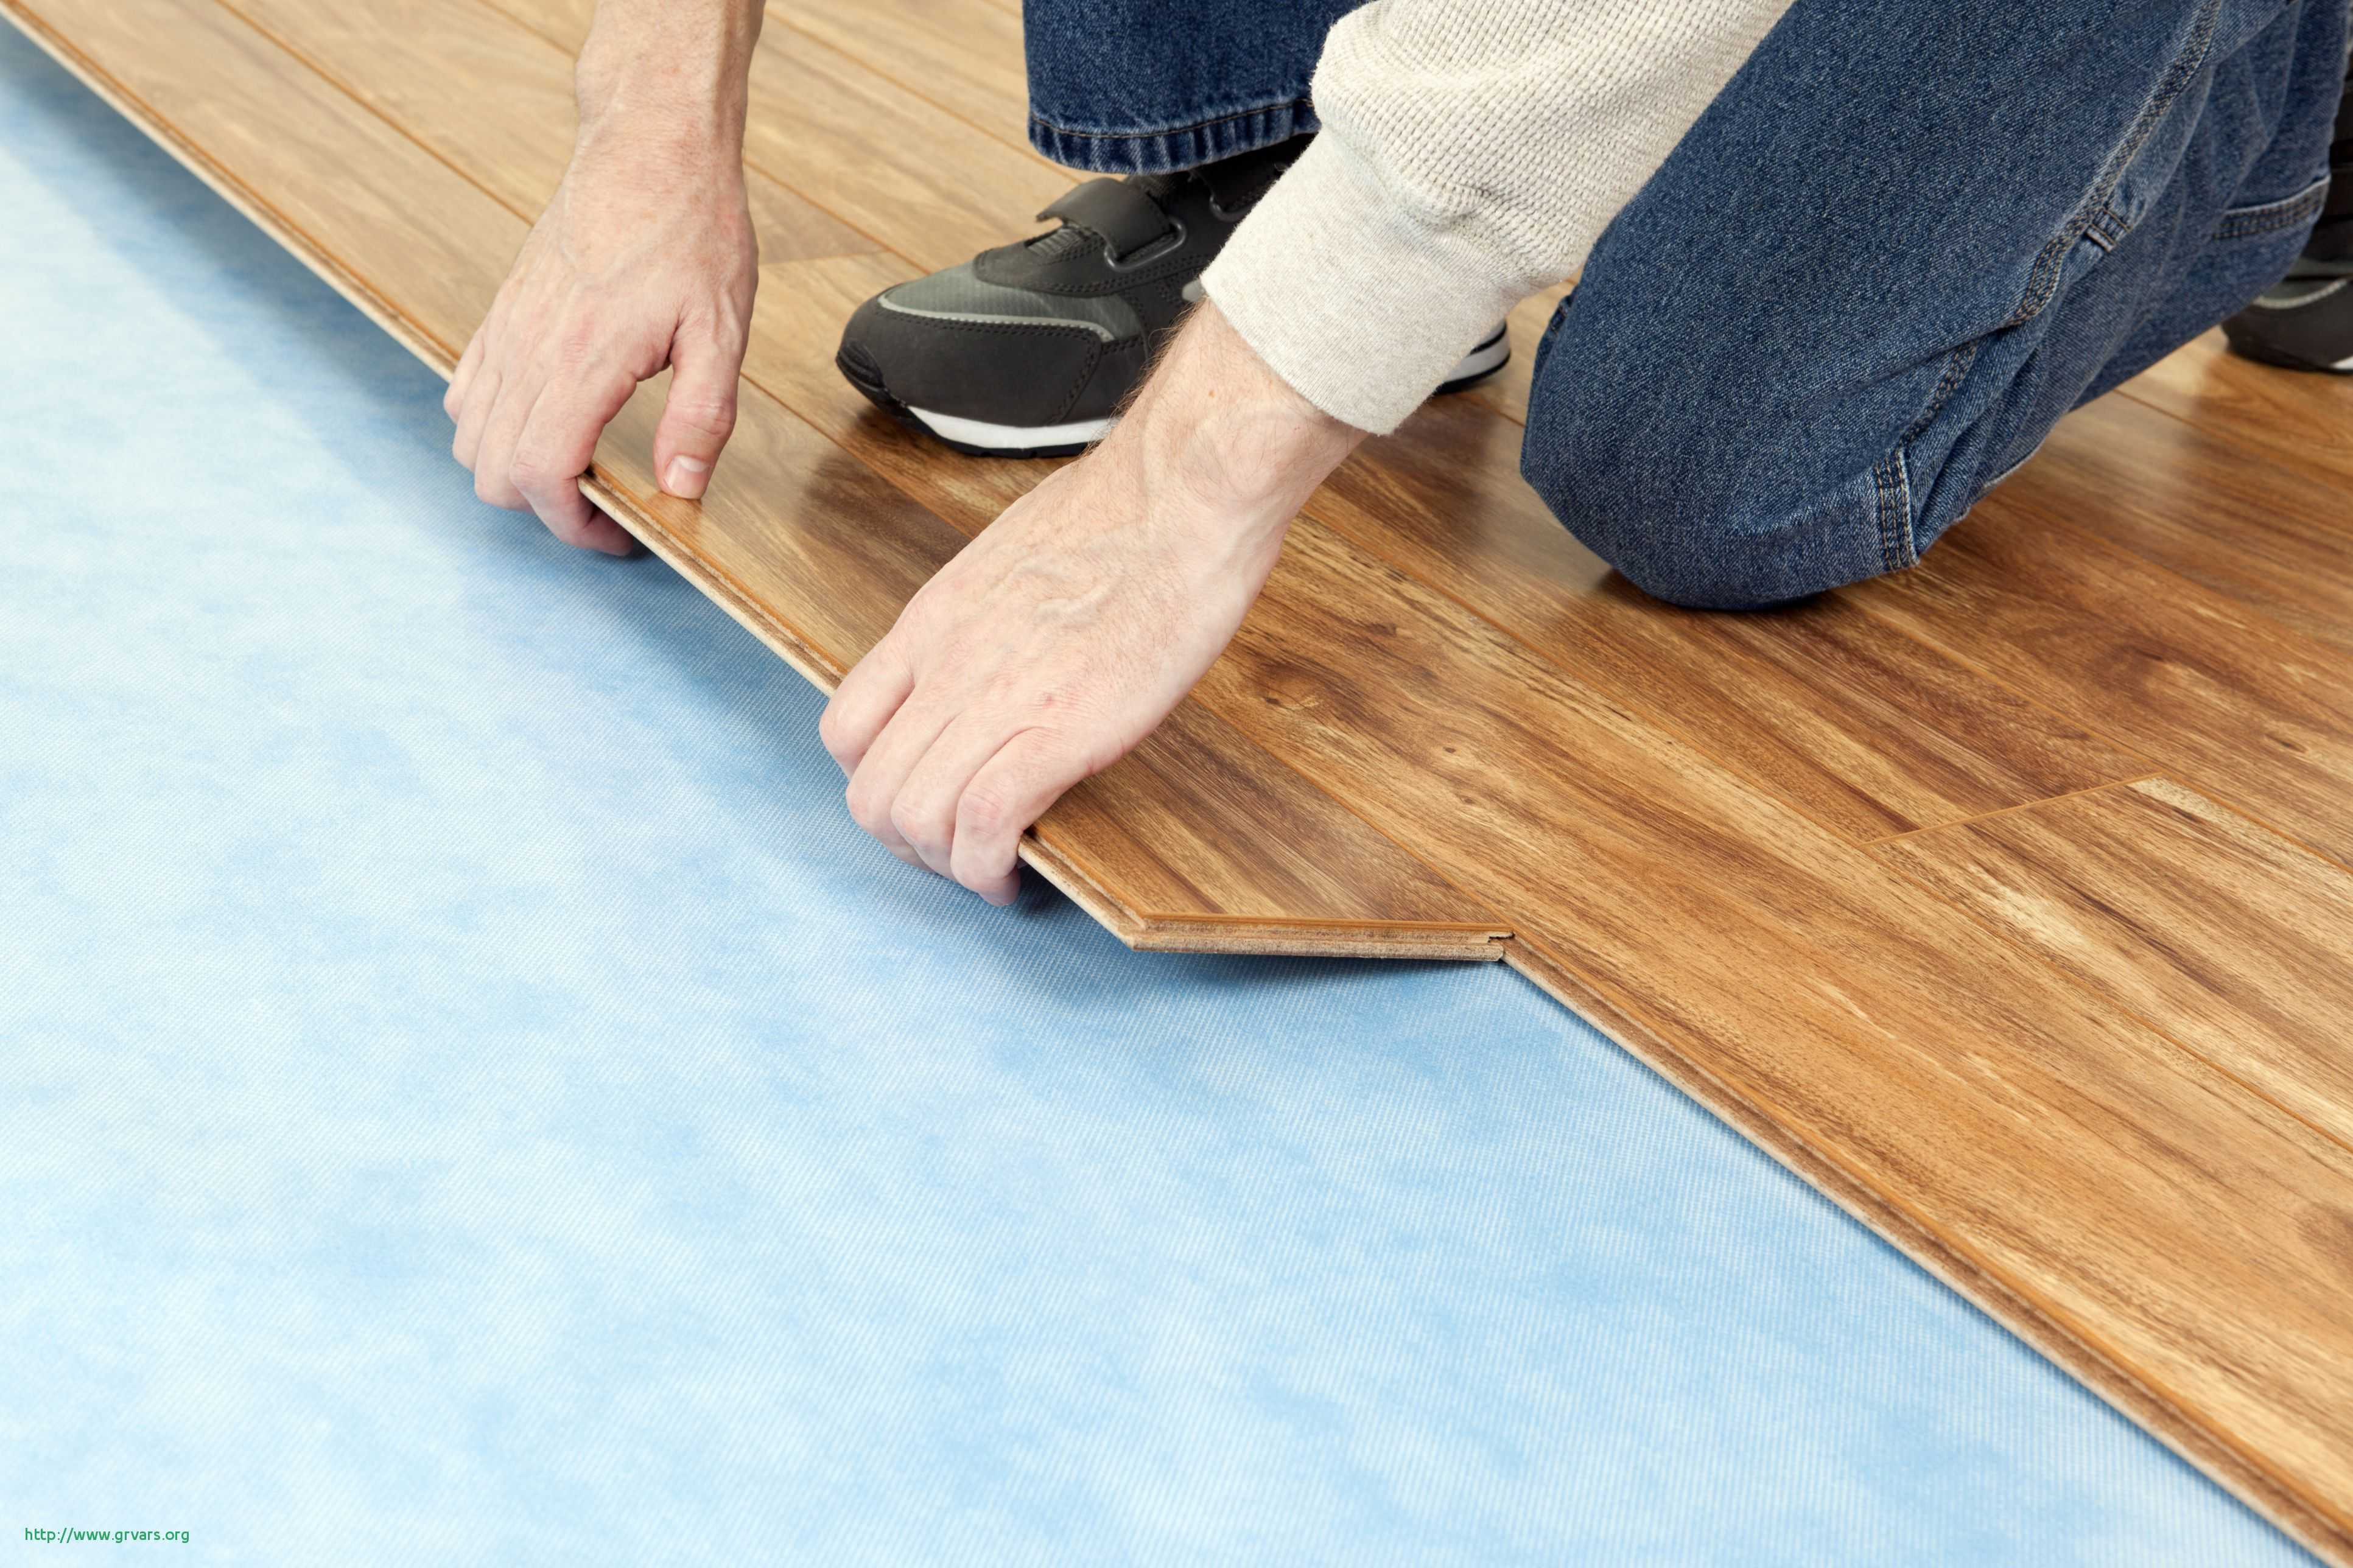 sika hardwood floor glue of 23 unique wood floor glue with moisture barrier ideas blog pertaining to wood floor glue with moisture barrier a‰lagant flooring underlayment materials and applications